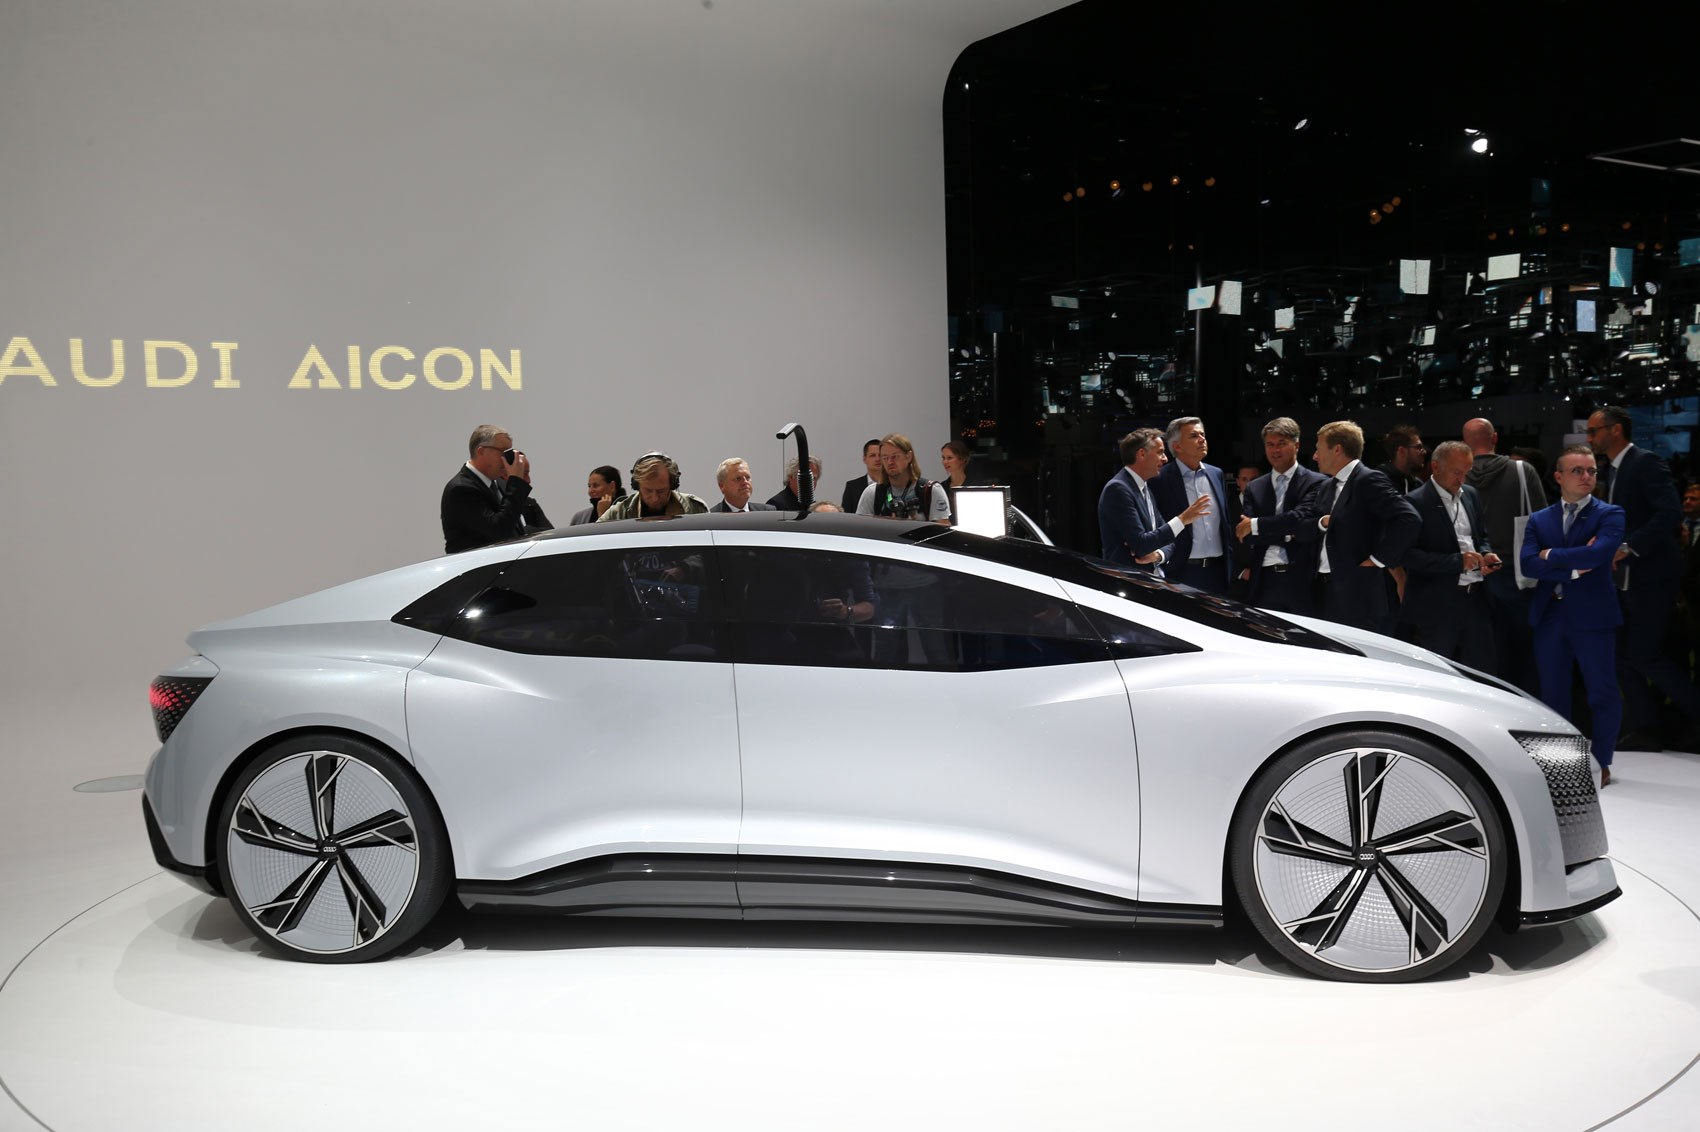 Audi Aicon And Elaine Concepts At 2017 Frankfurt Motor